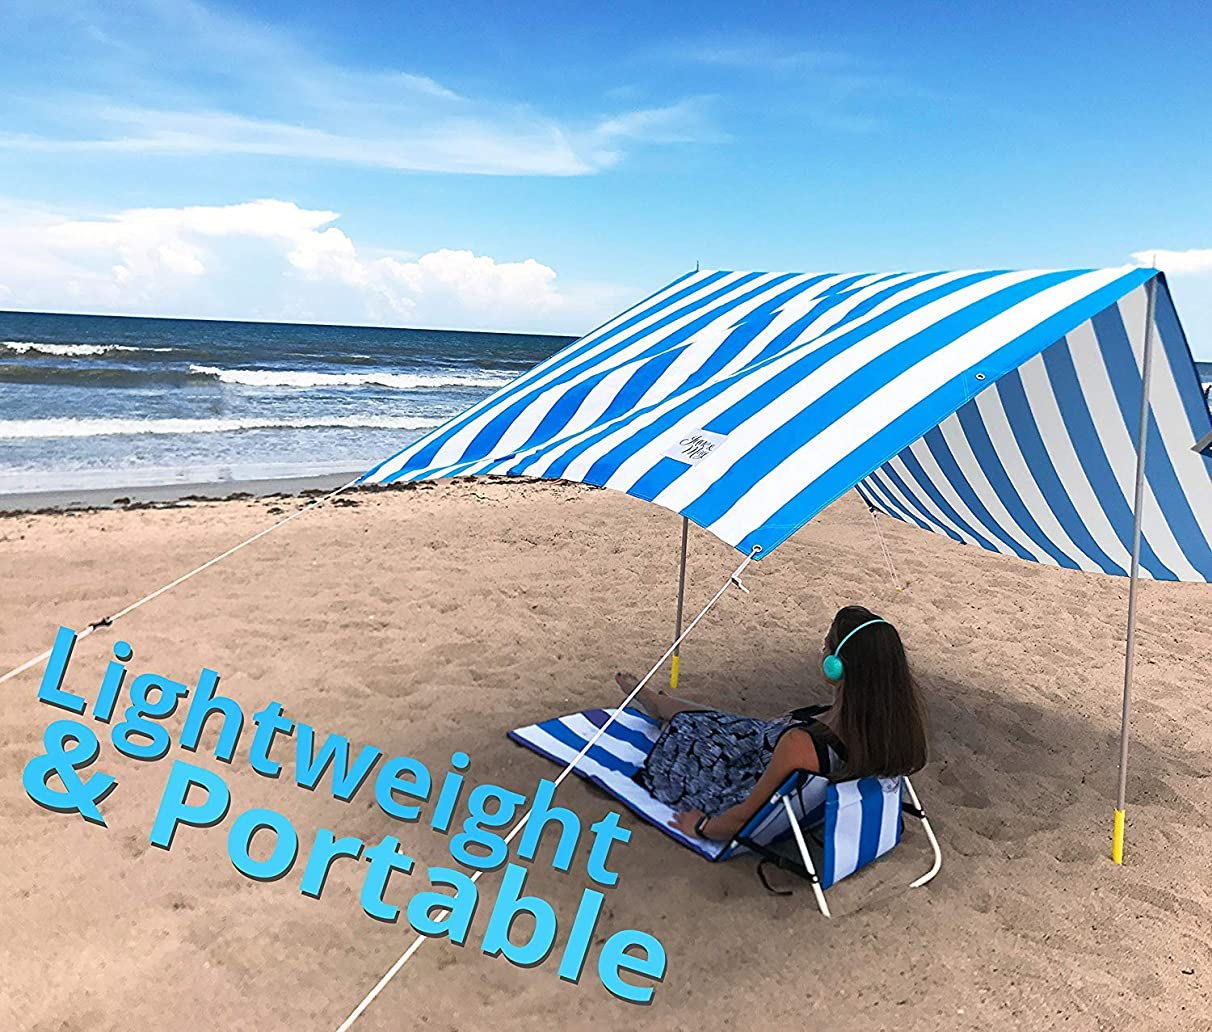 June & May Beach Canopy – Large, Lightweight, Weatherproof, Beach Tent with More UV Protection Than a Beach Umbrella 10'x6'